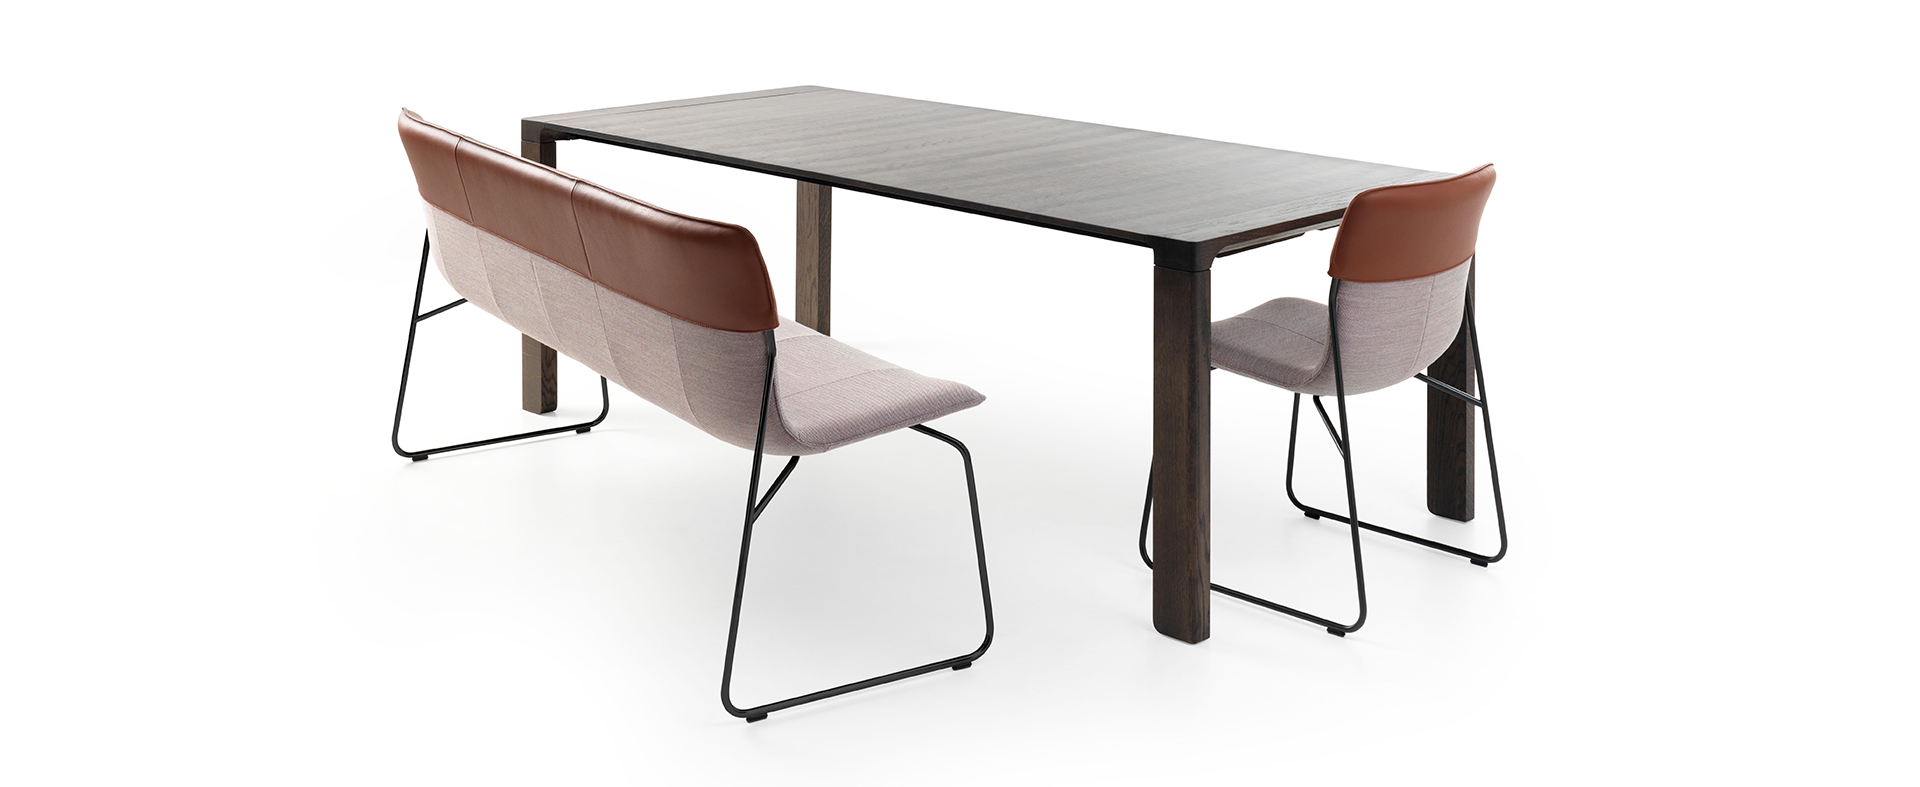 Design Diningroom bench Didore by Leolux